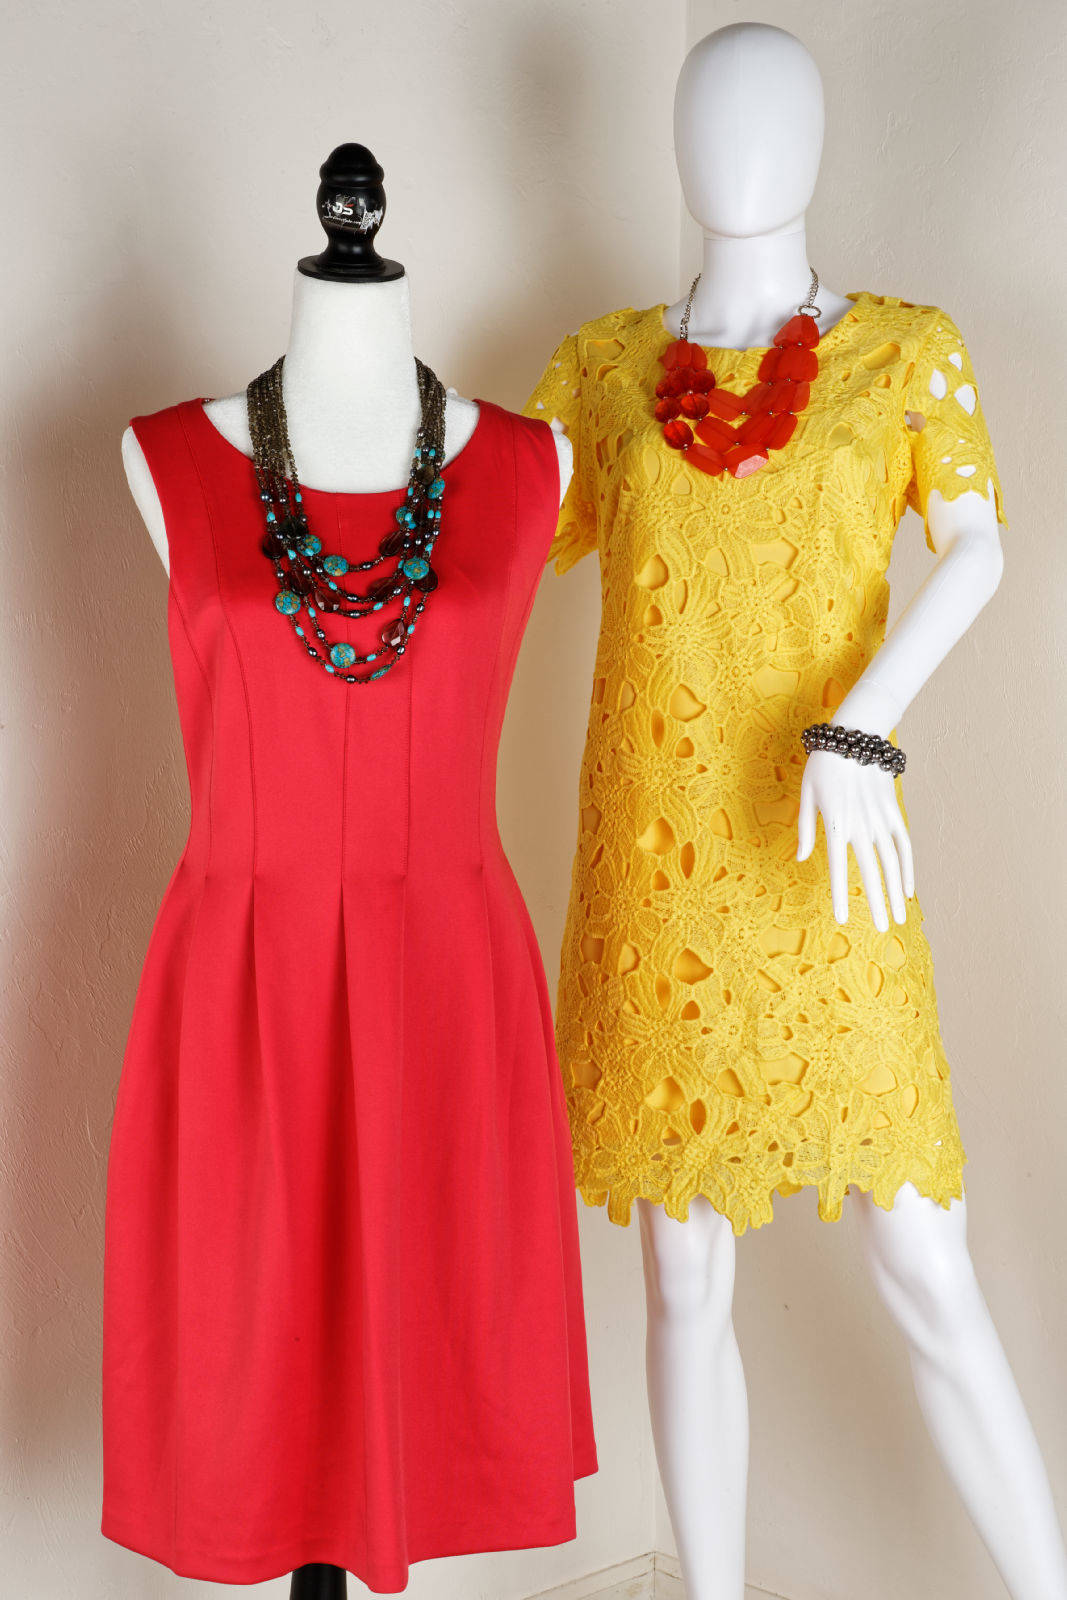 Pink Orange and yellow summer dresses with jewlery